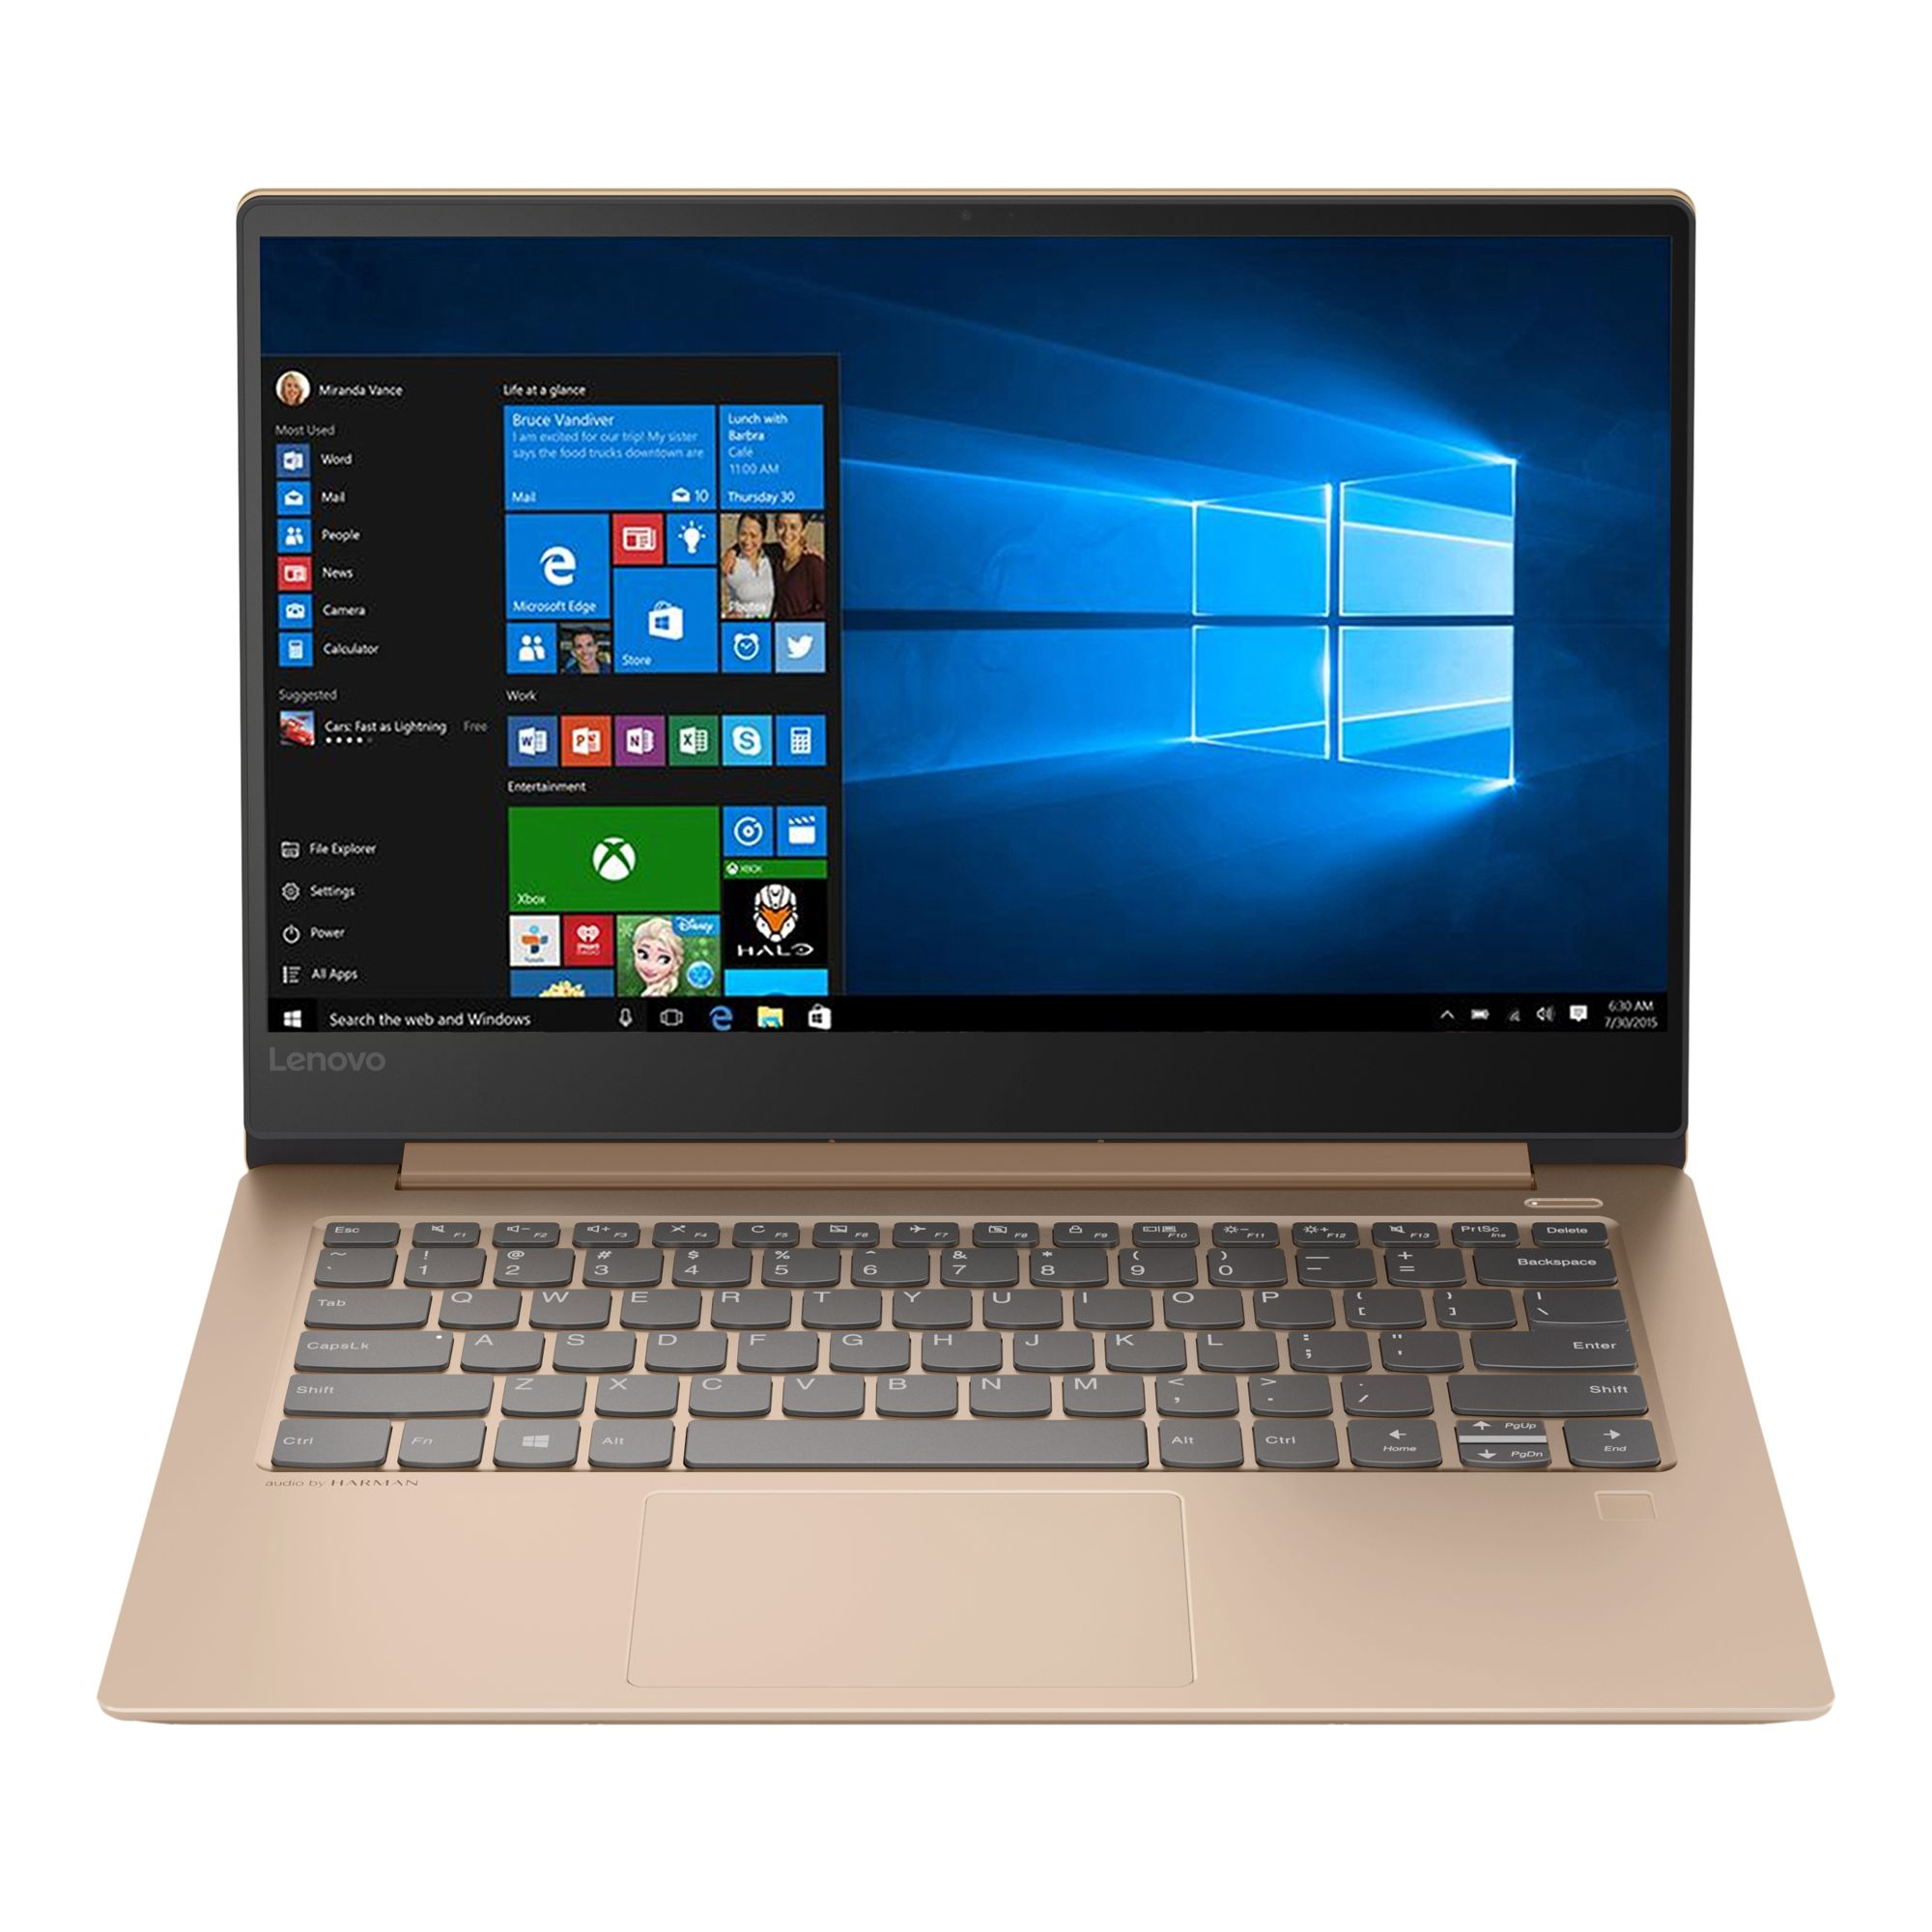 Ultrabook Lenovo IdeaPad 530S 14 WQHD Intel Core i7-8550U MX150-2GB RAM 16GB SSD 512GB Windows 10 Home Copper